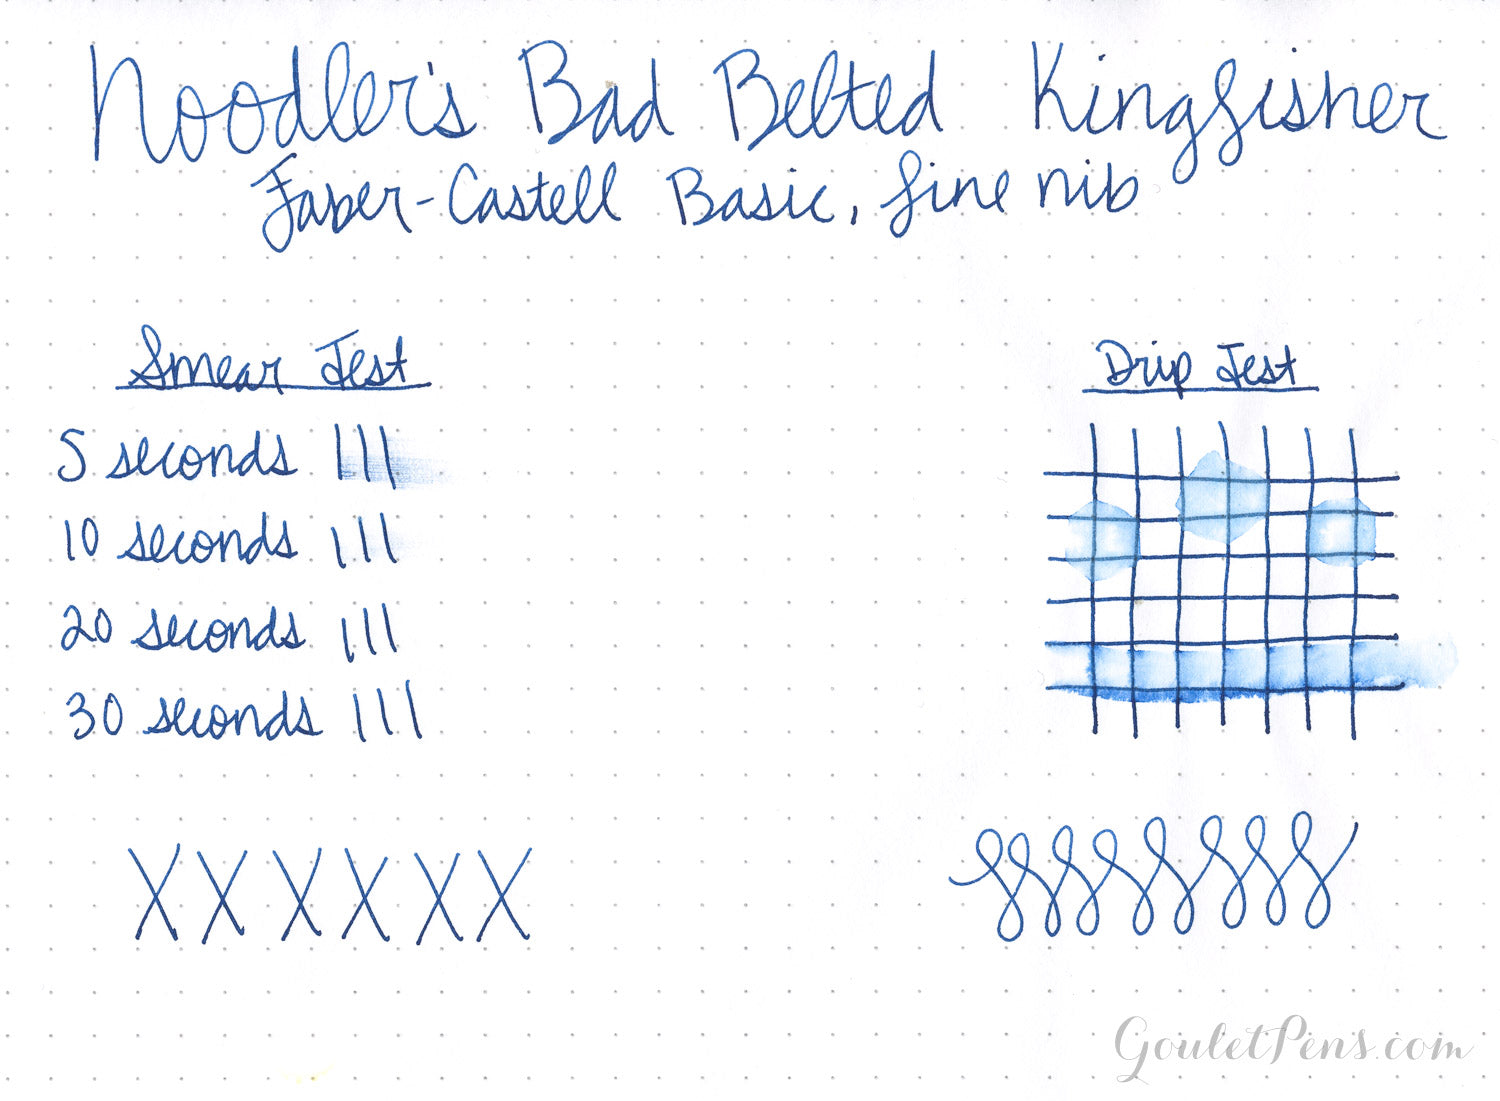 Noodler's Bad Belted Kingfisher - Ink Sample